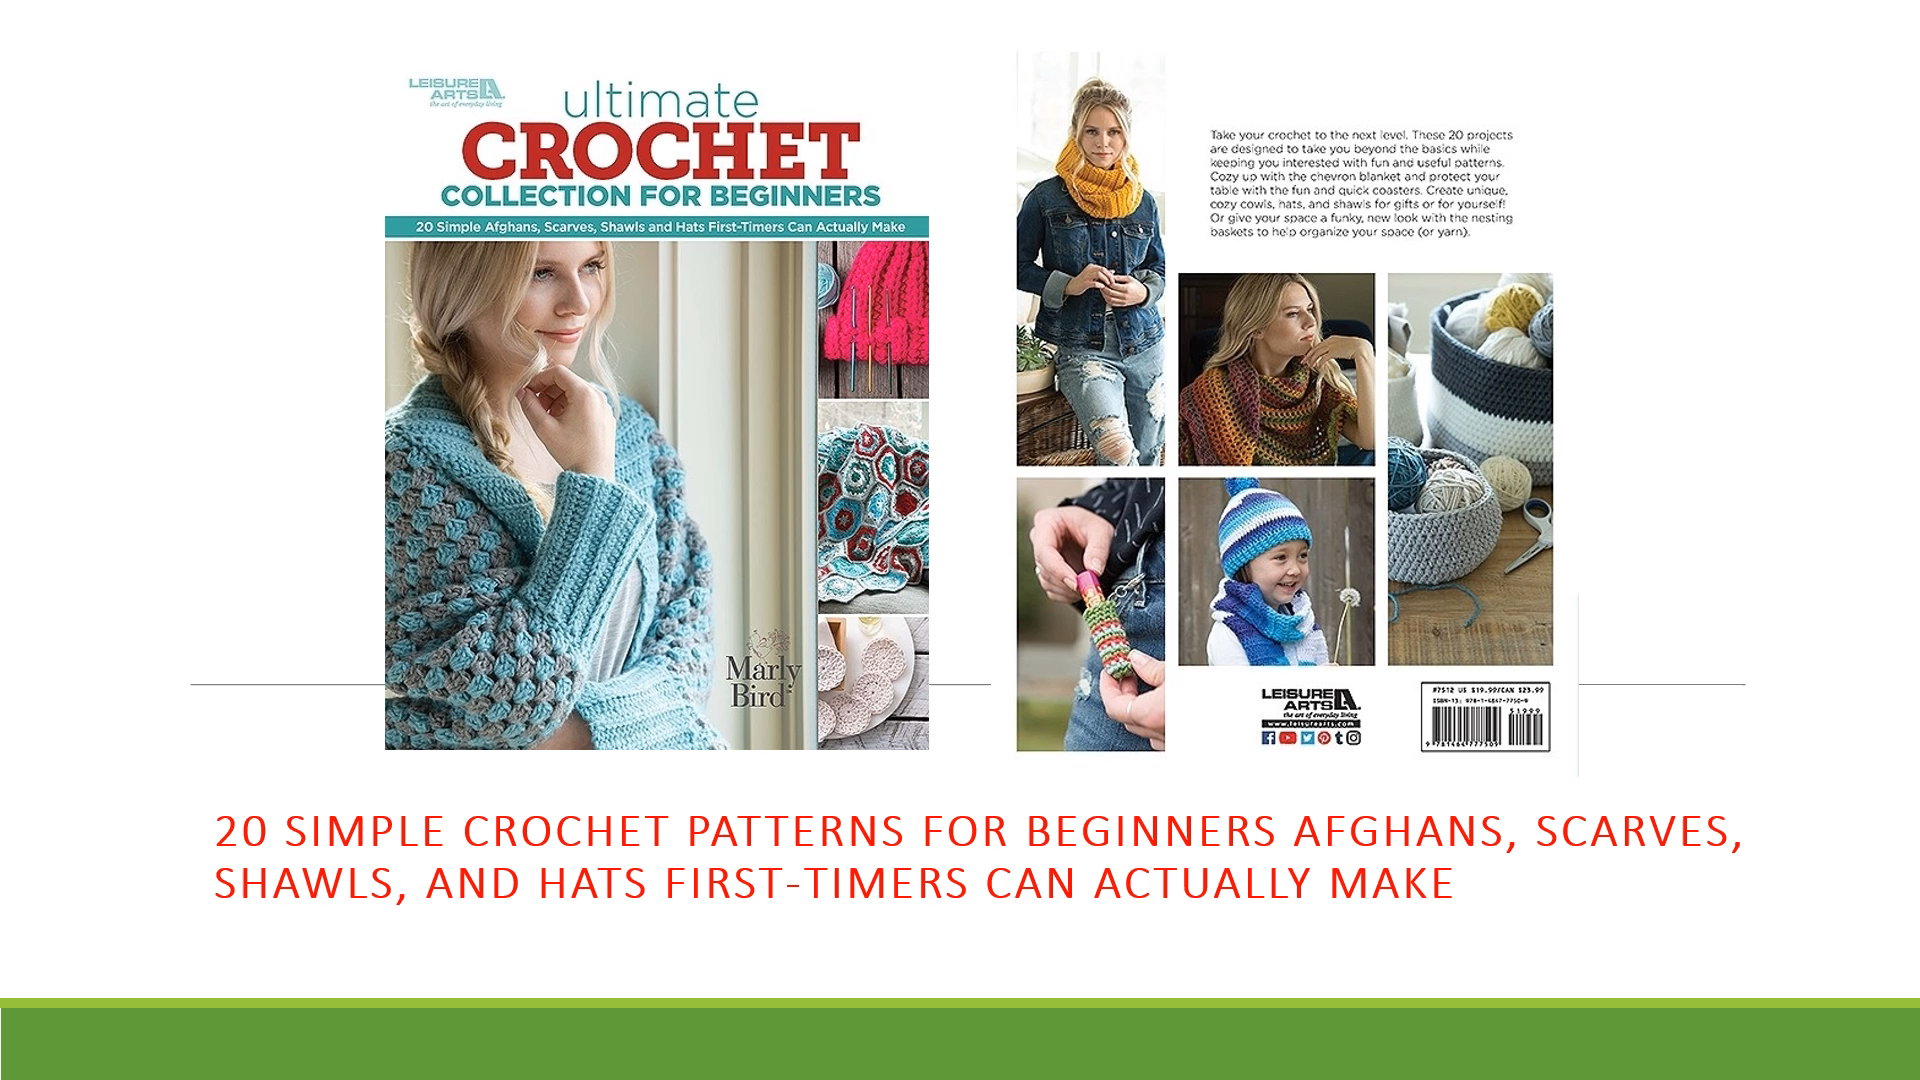 Photo of 20 Simple Crochet Patterns for Beginners Afghans, Scarves, Shawls, and Hats First-Timers Can Make